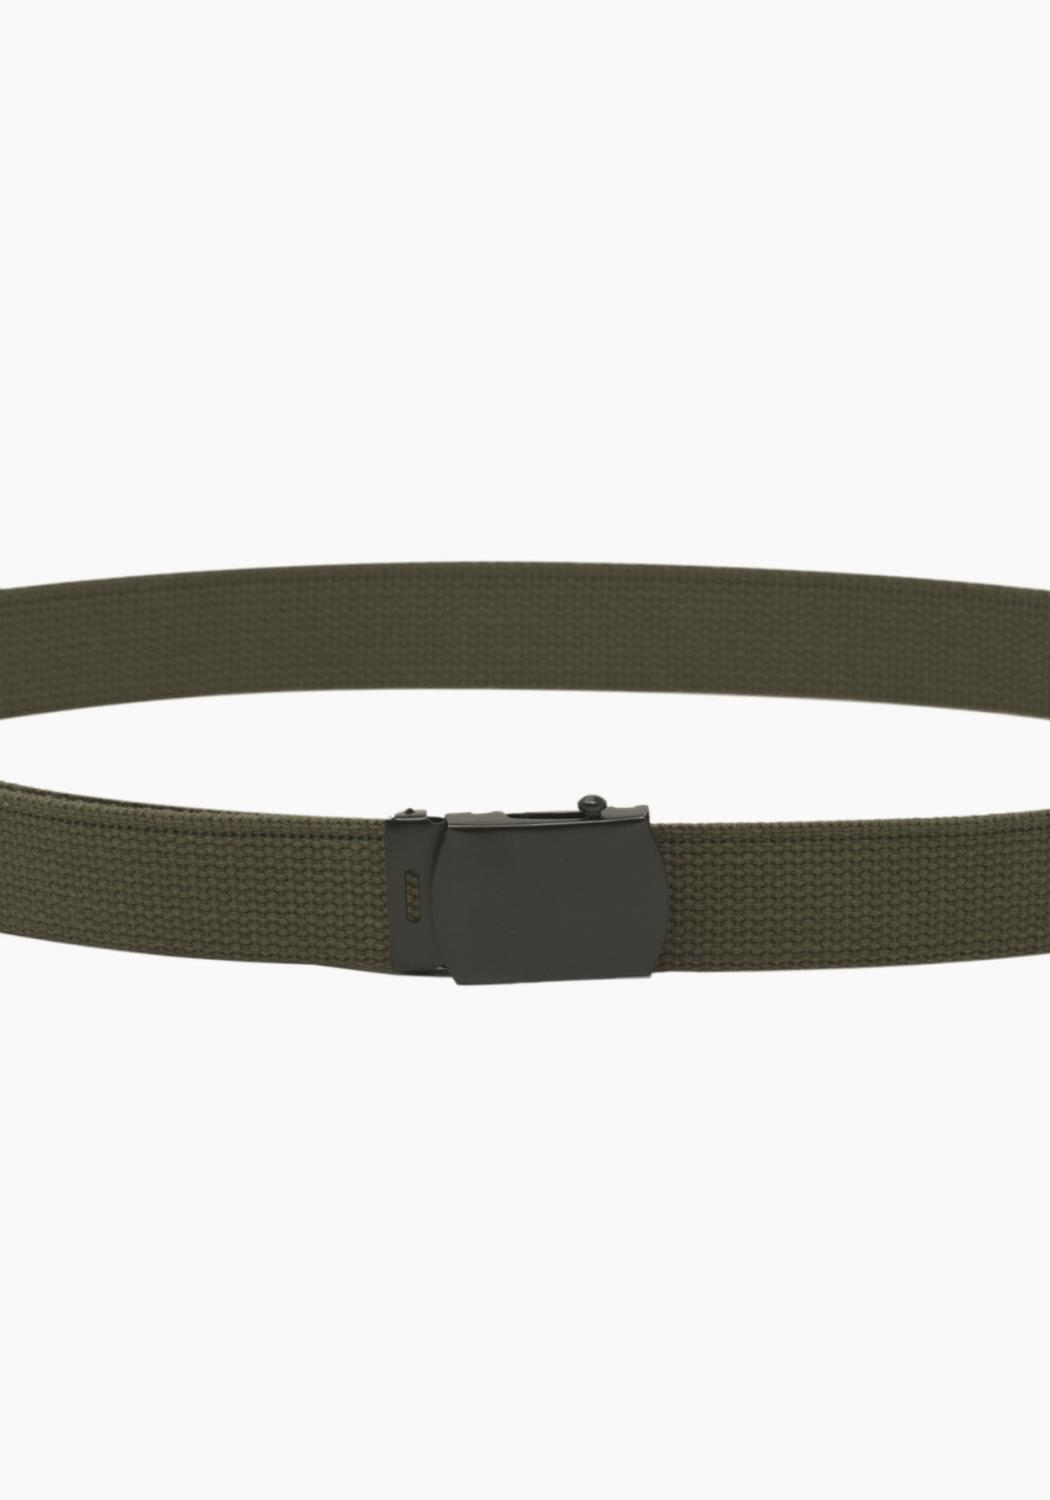 Rothco Military Web Belts With Black Buckle